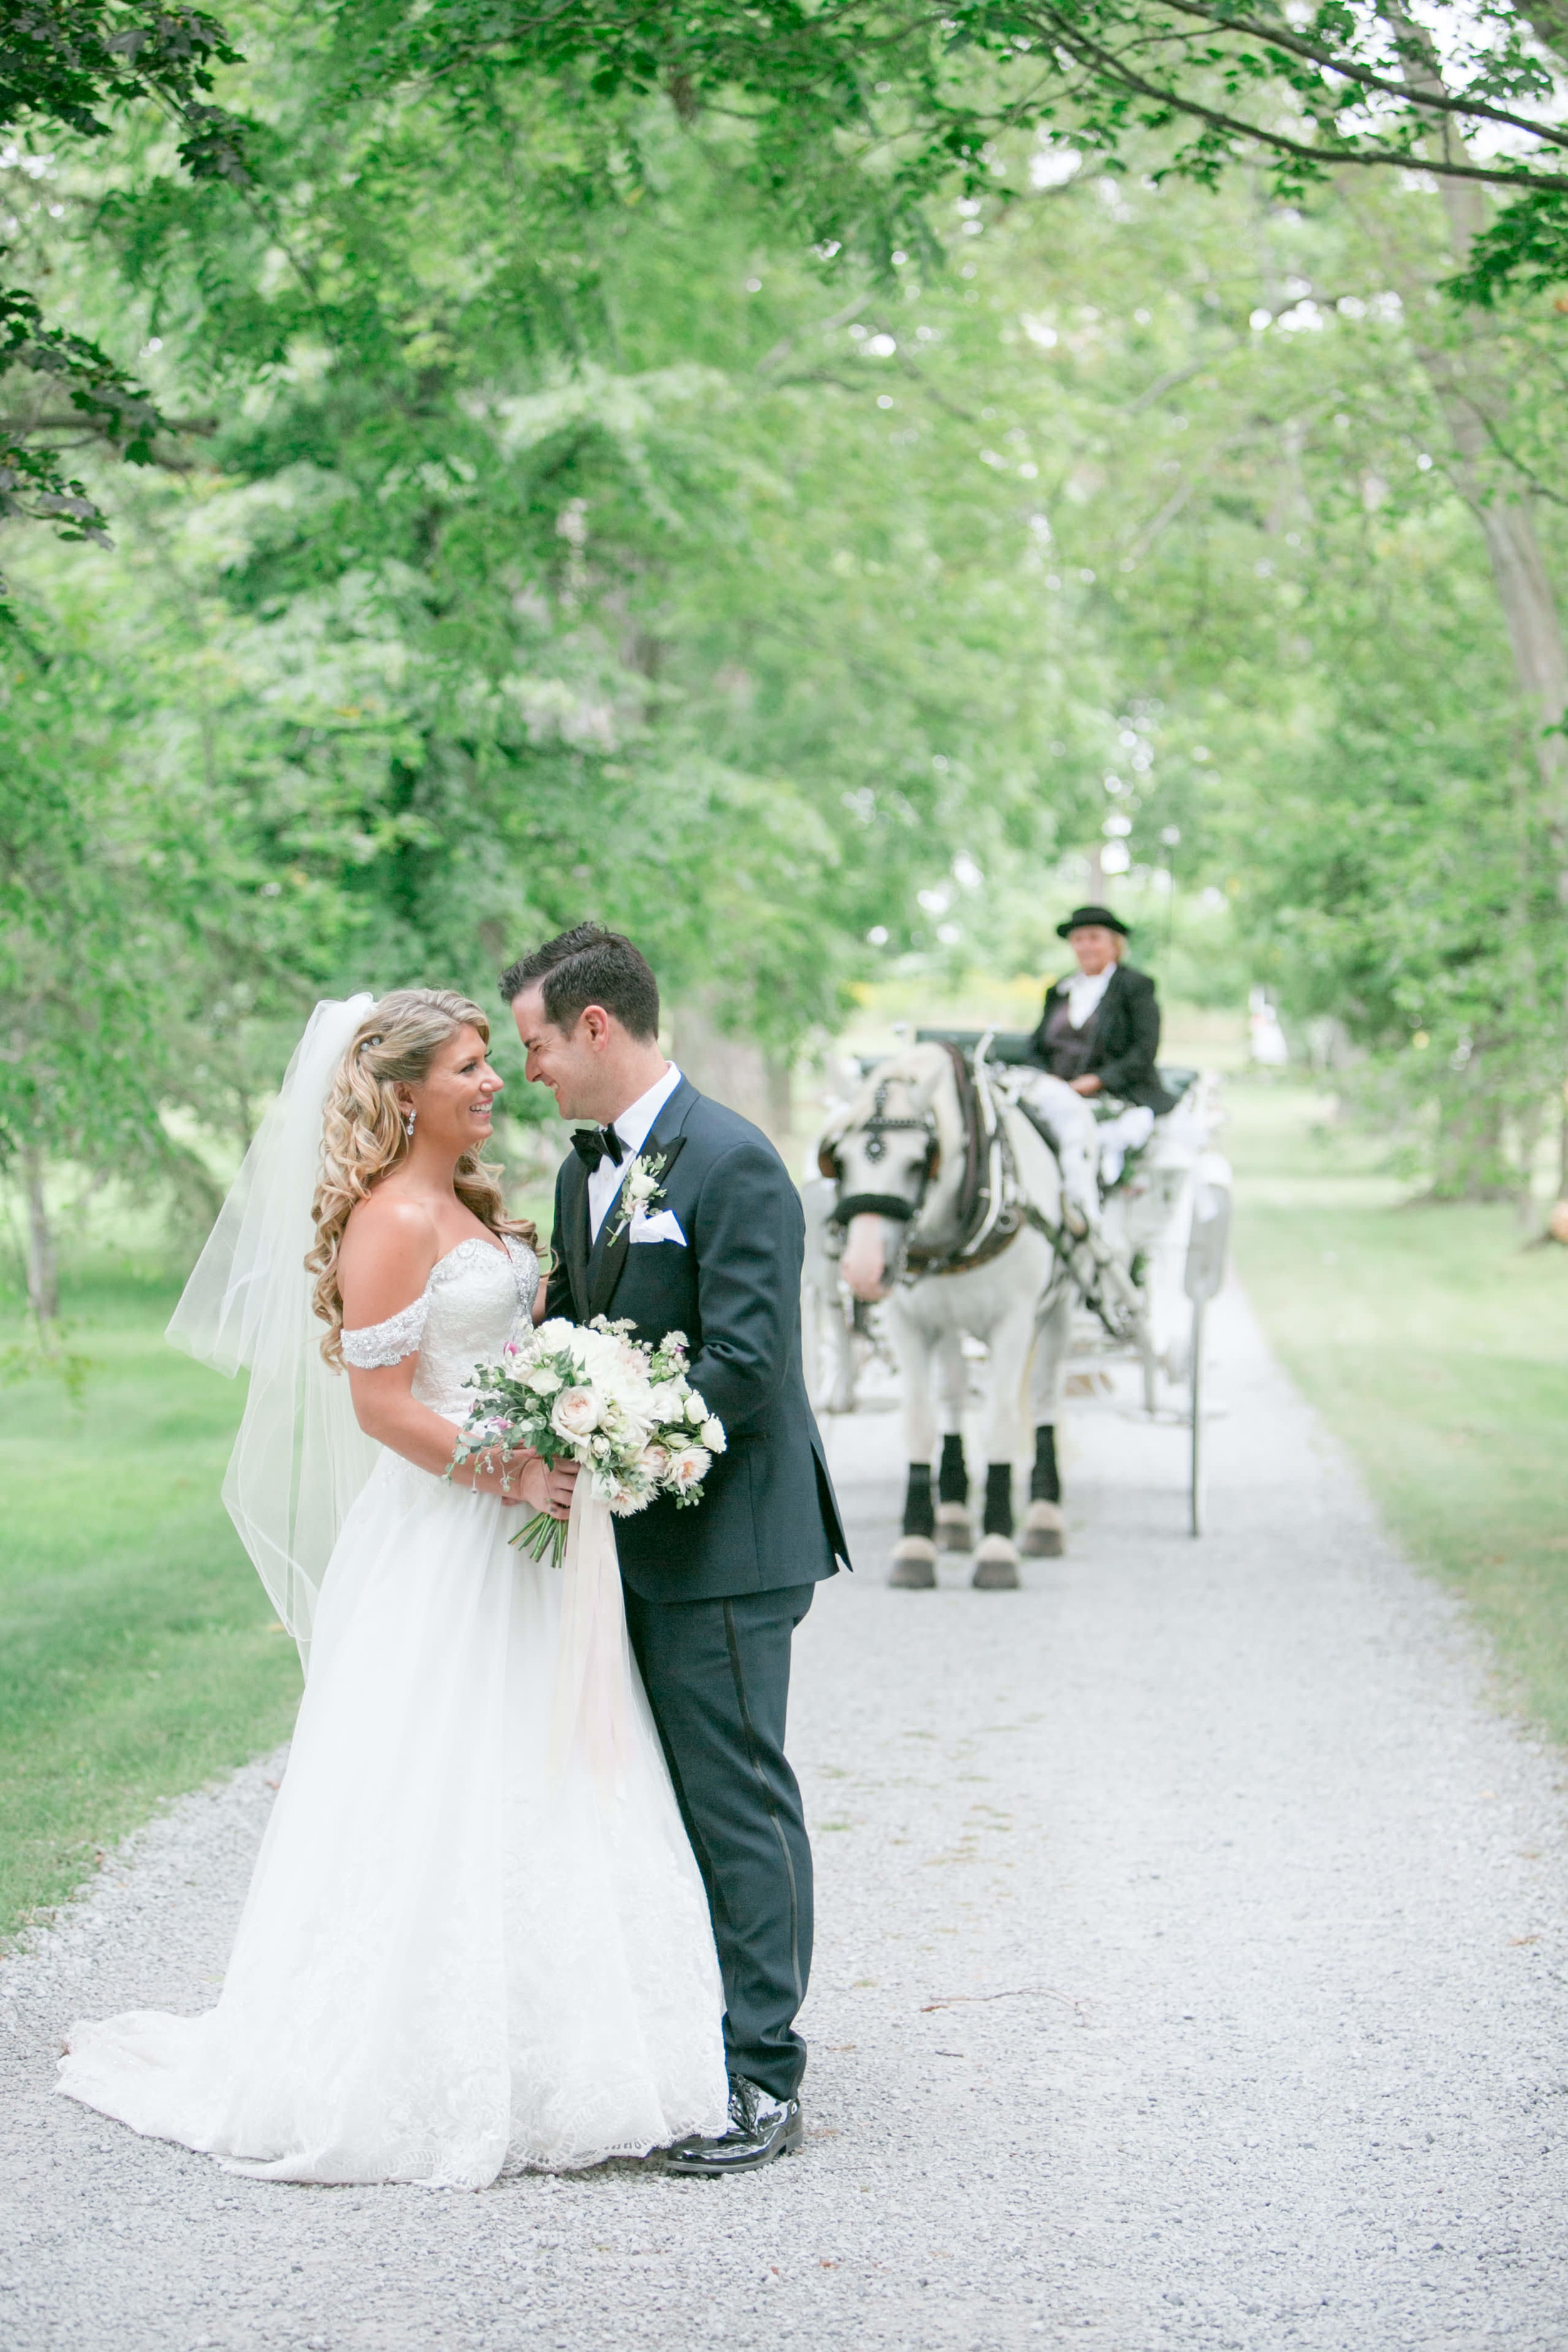 Ashley___Zac___Daniel_Ricci_Weddings___High_Res._Finals_439.jpg